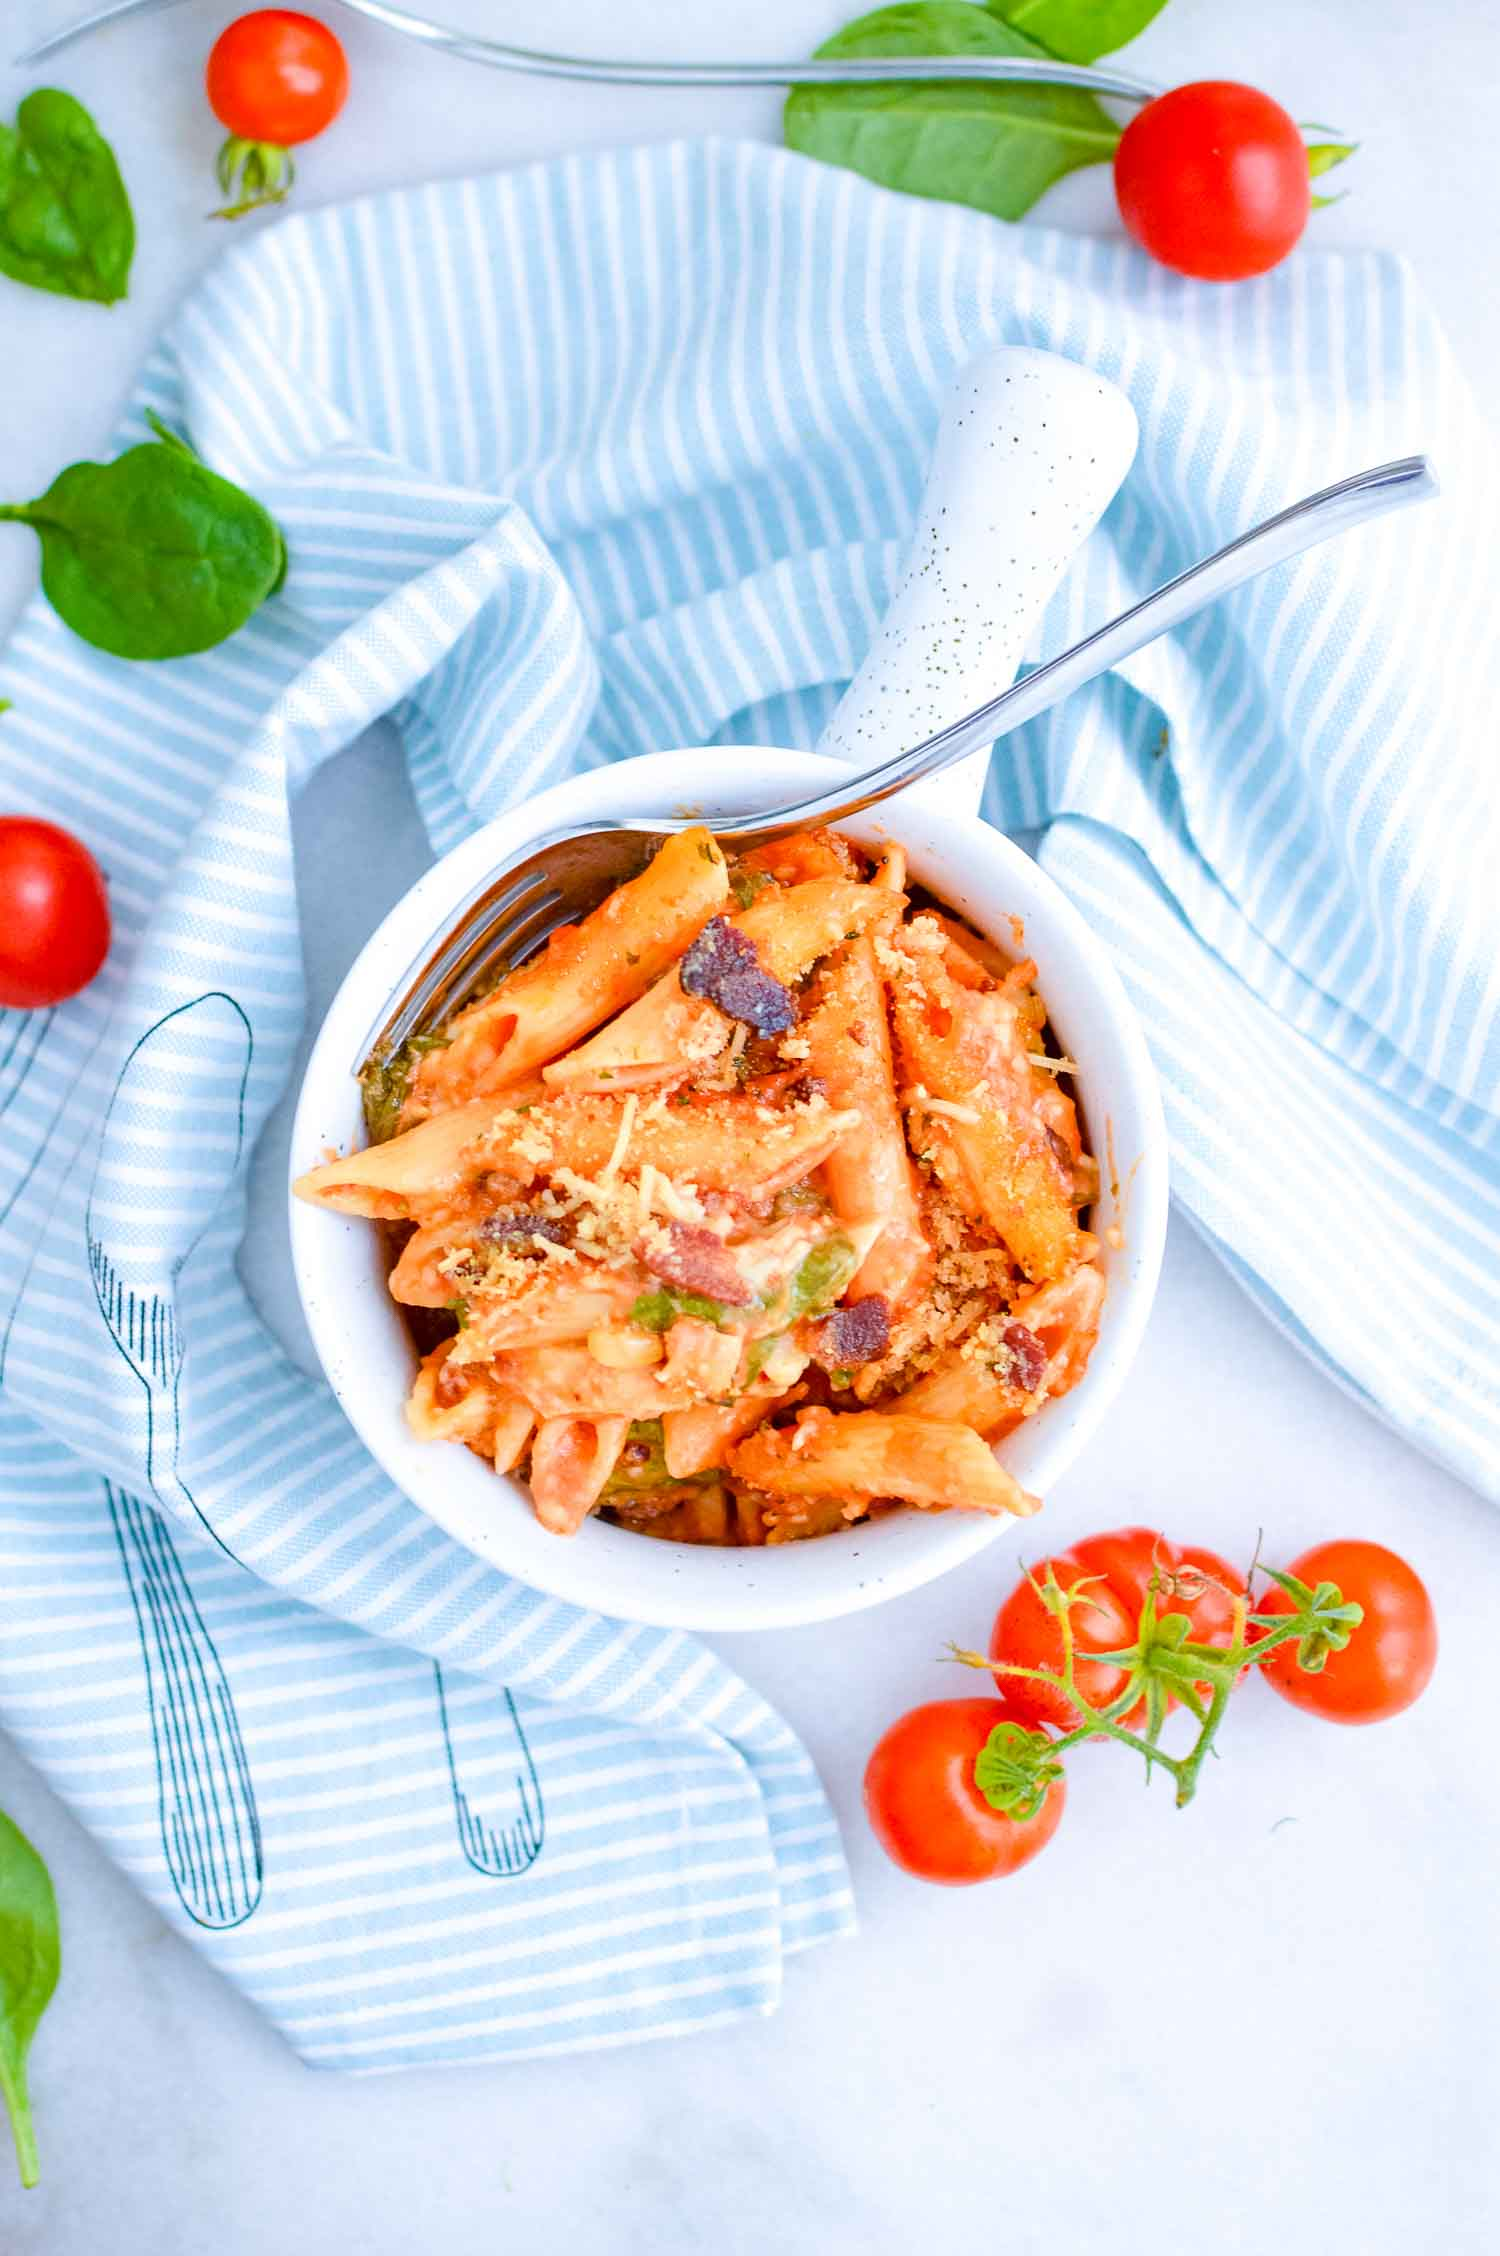 A white bowl full of pasta with a silver fork in it with a blue and white striped towel and basil and tomatoes around it.